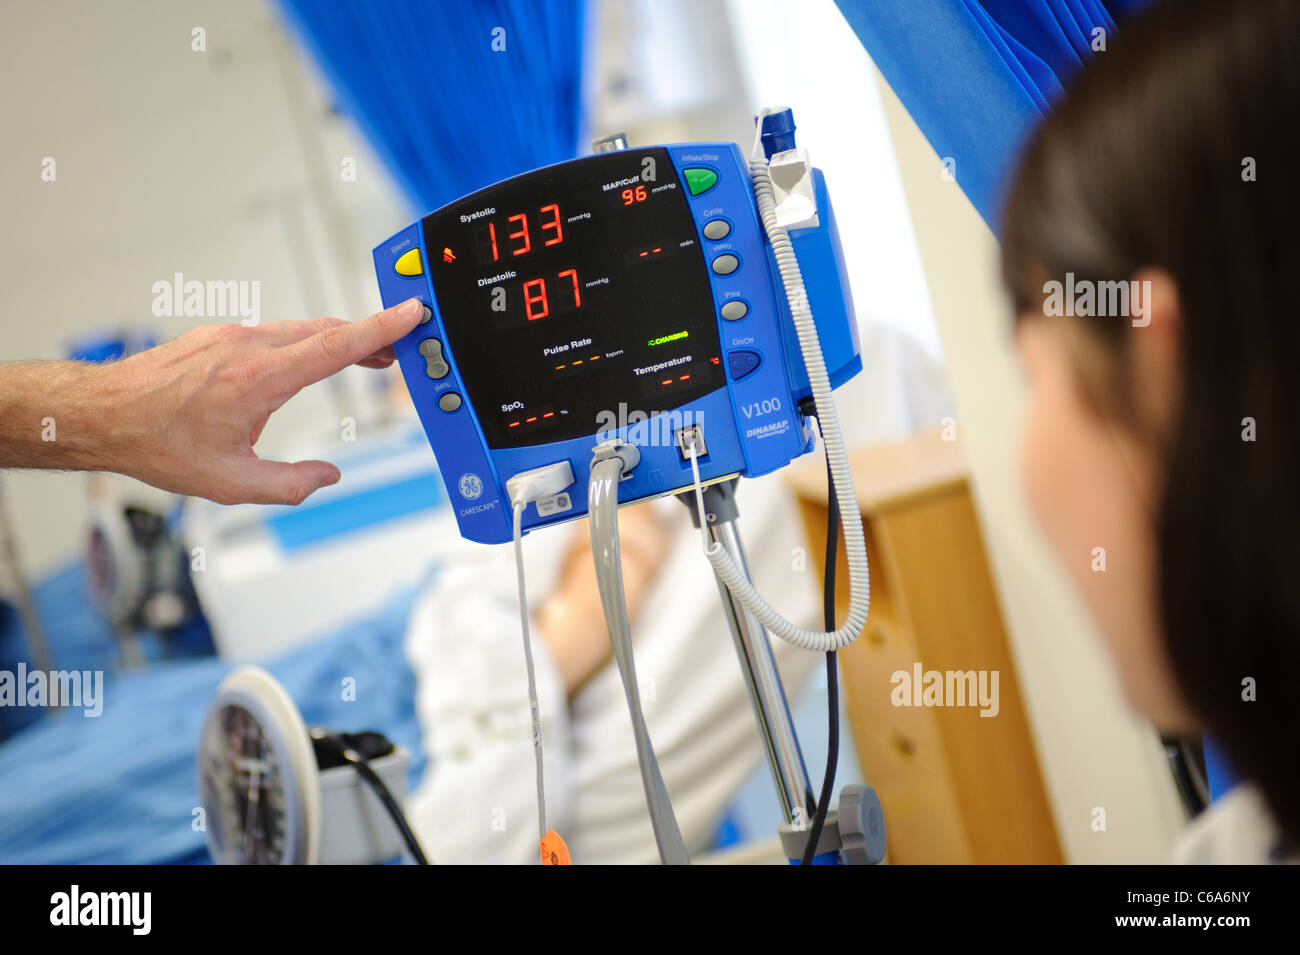 blood pressure and pulse monitor machine hospital ward - Stock Image